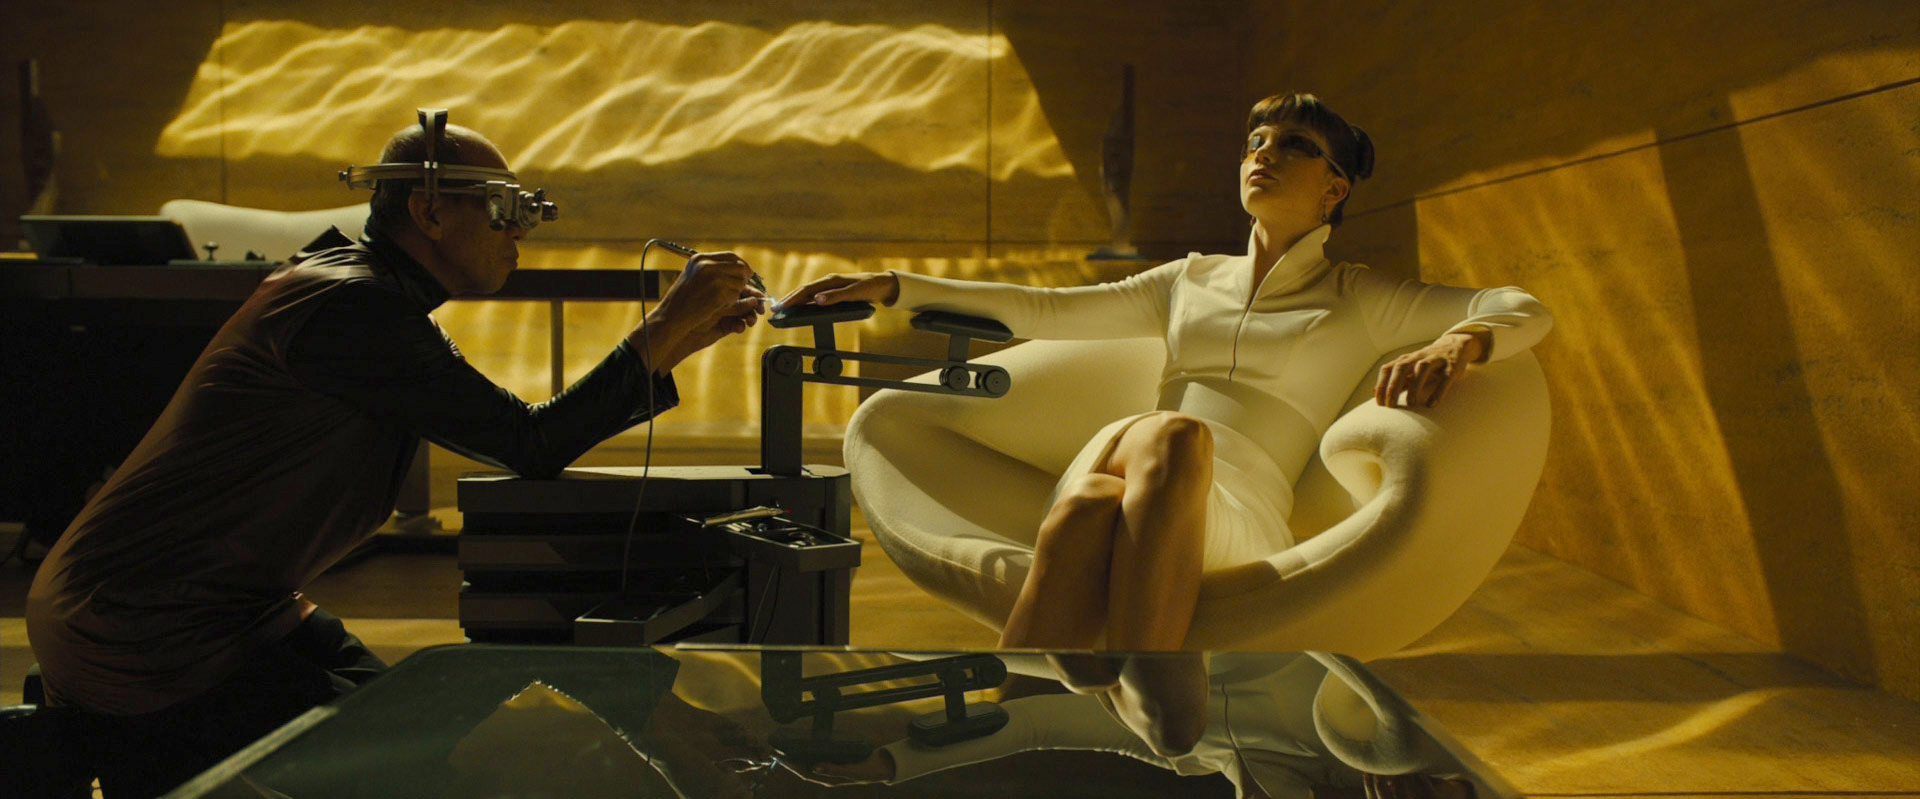 Life Imitates Art 6 Key Artefacts In Blade Runner 2049 And The Decorating Ideas To Hide A Fuse Box Hidden Stories They Tell Film Furniture